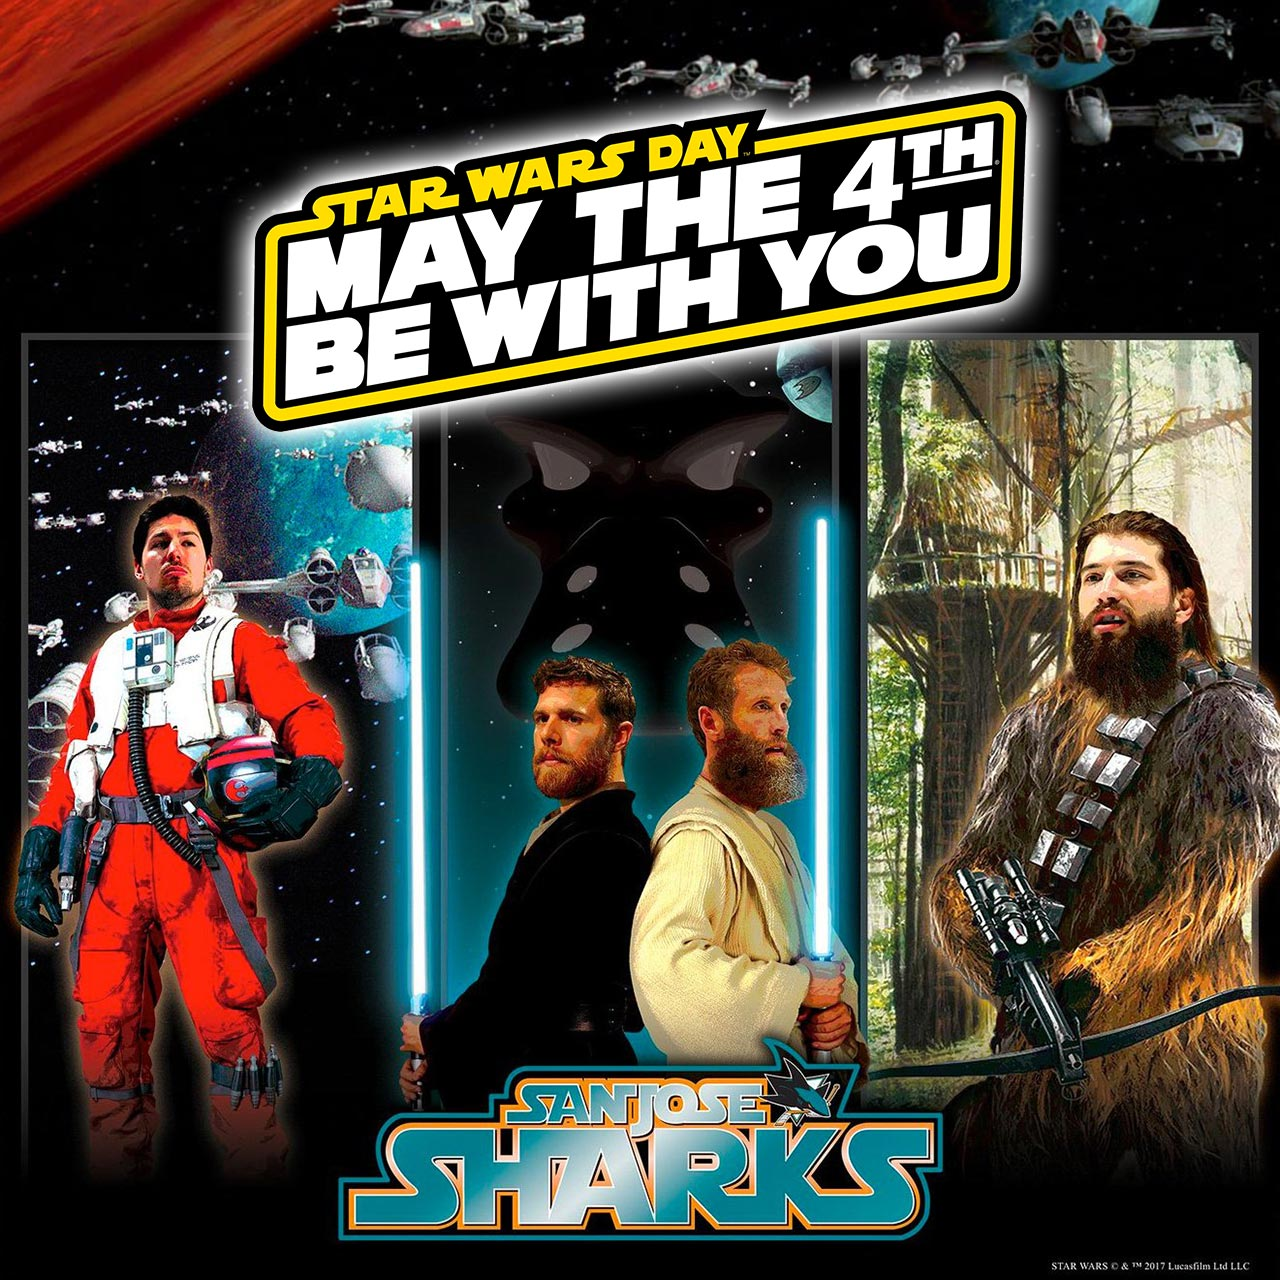 May The 4th Be With You Vancouver: Star Wars Day: Sports Teams From SJ Sharks To The Steelers